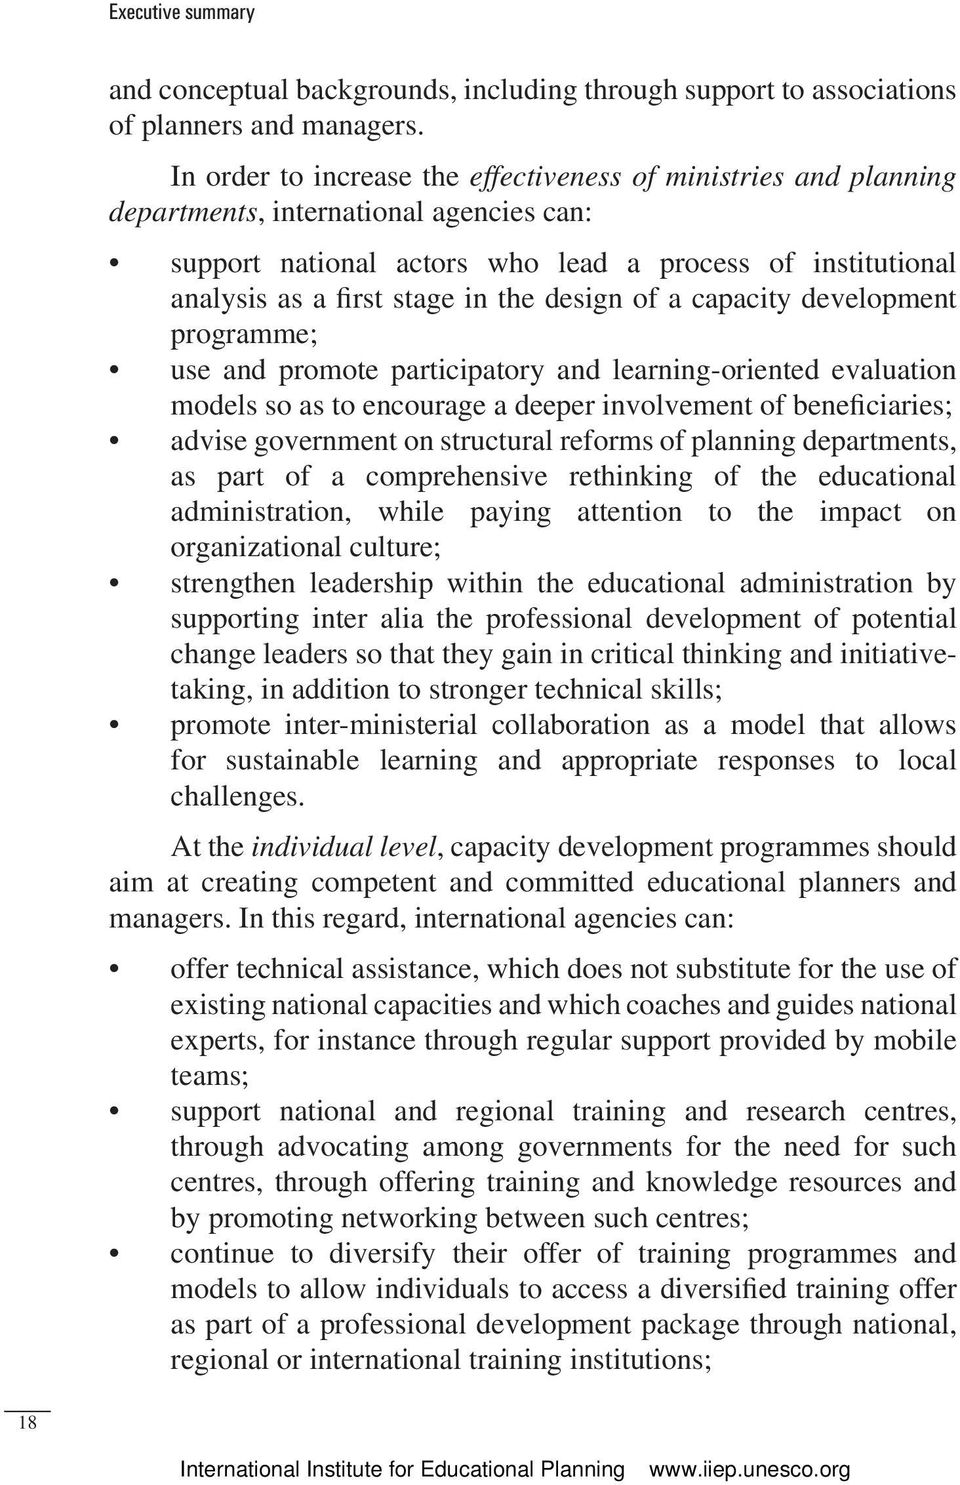 design of a capacity development programme; use and promote participatory and learning-oriented evaluation models so as to encourage a deeper involvement of beneficiaries; advise government on